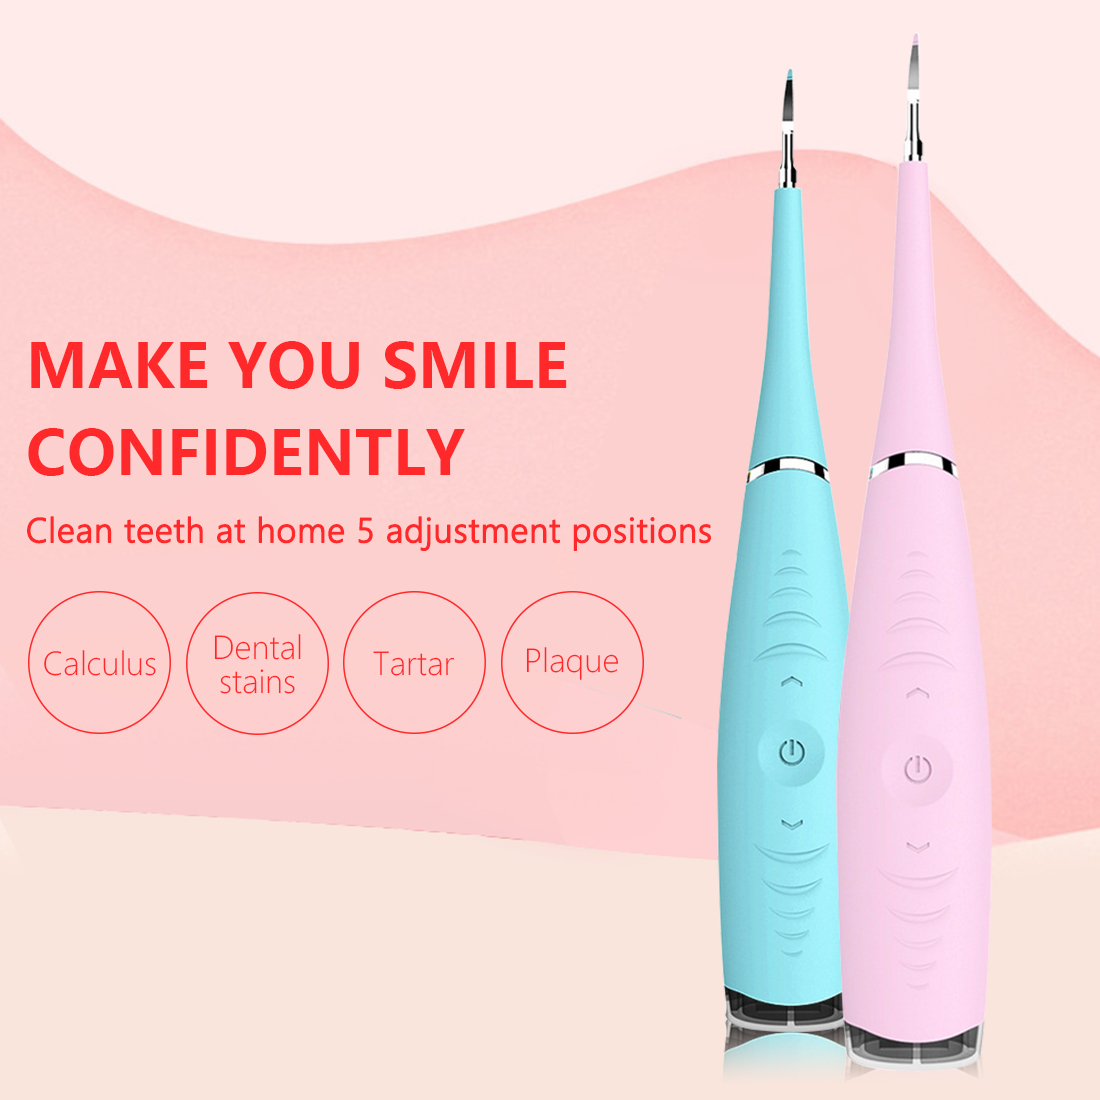 Portable Electric Ultrasonic Dental Scaler Tooth Teeth Whitening Calculus Remover Tooth Stains Tartar Tool Dentist Oral Hygiene